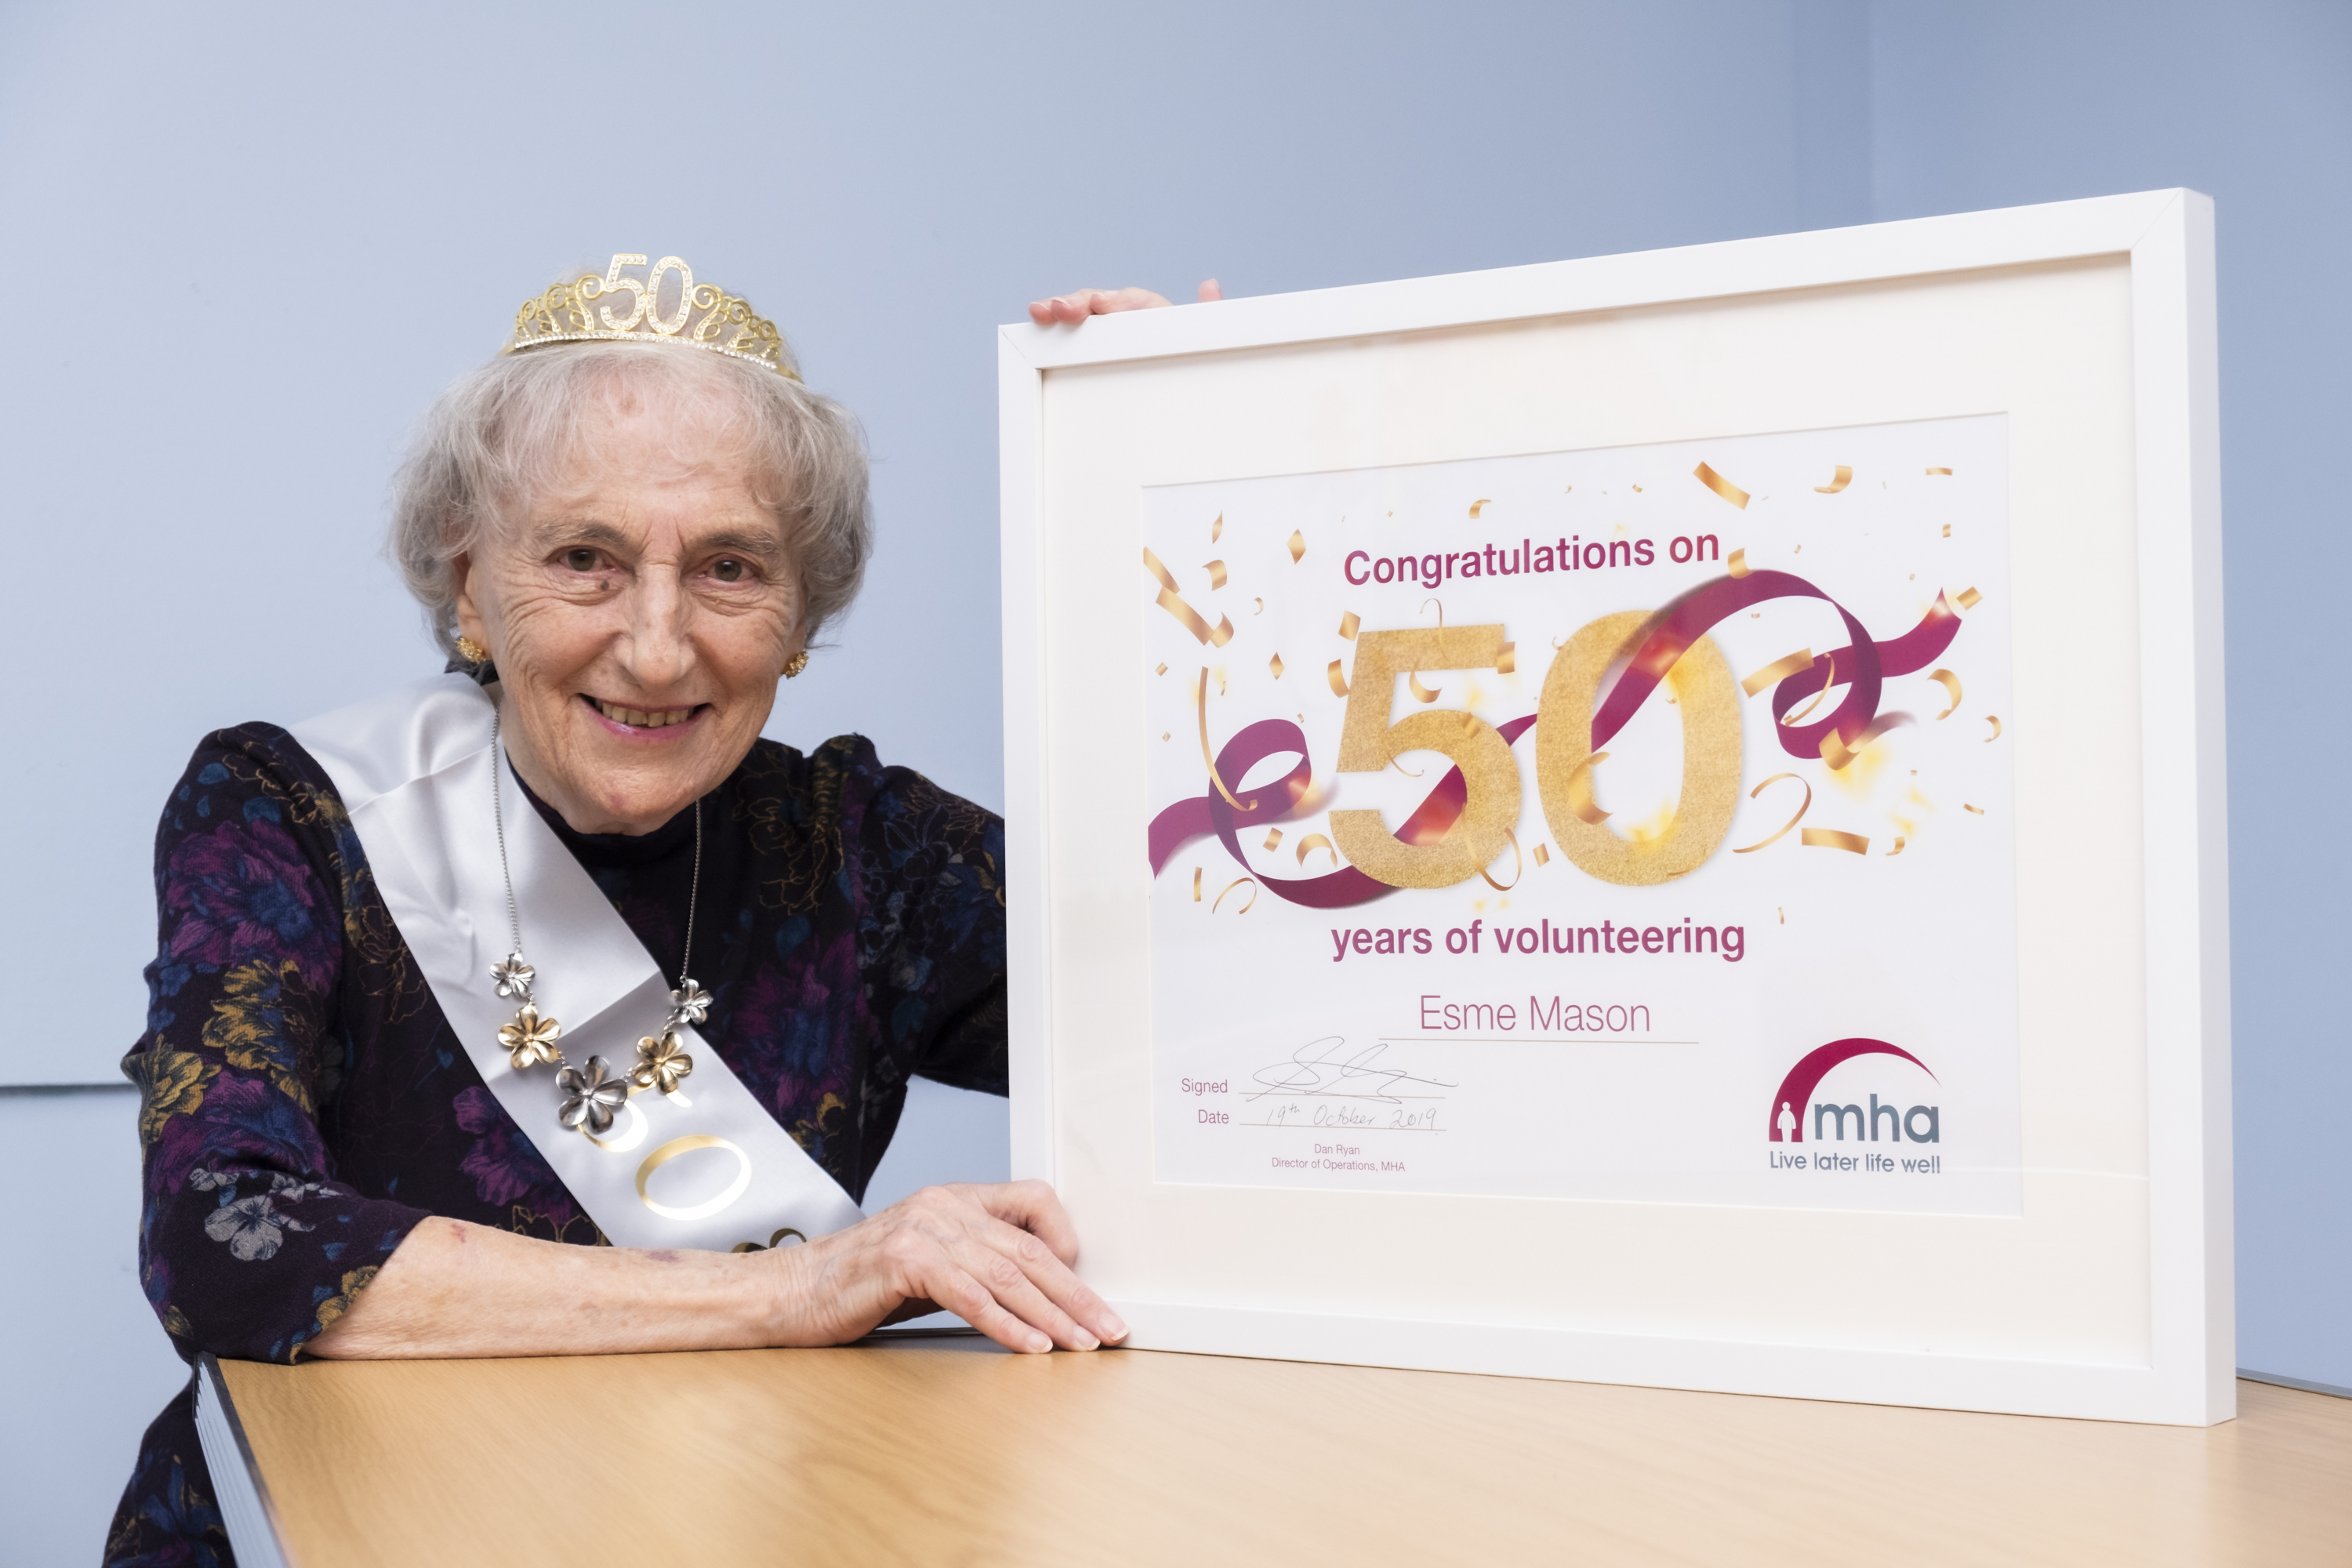 Award for Esme's 50 years of volunteering